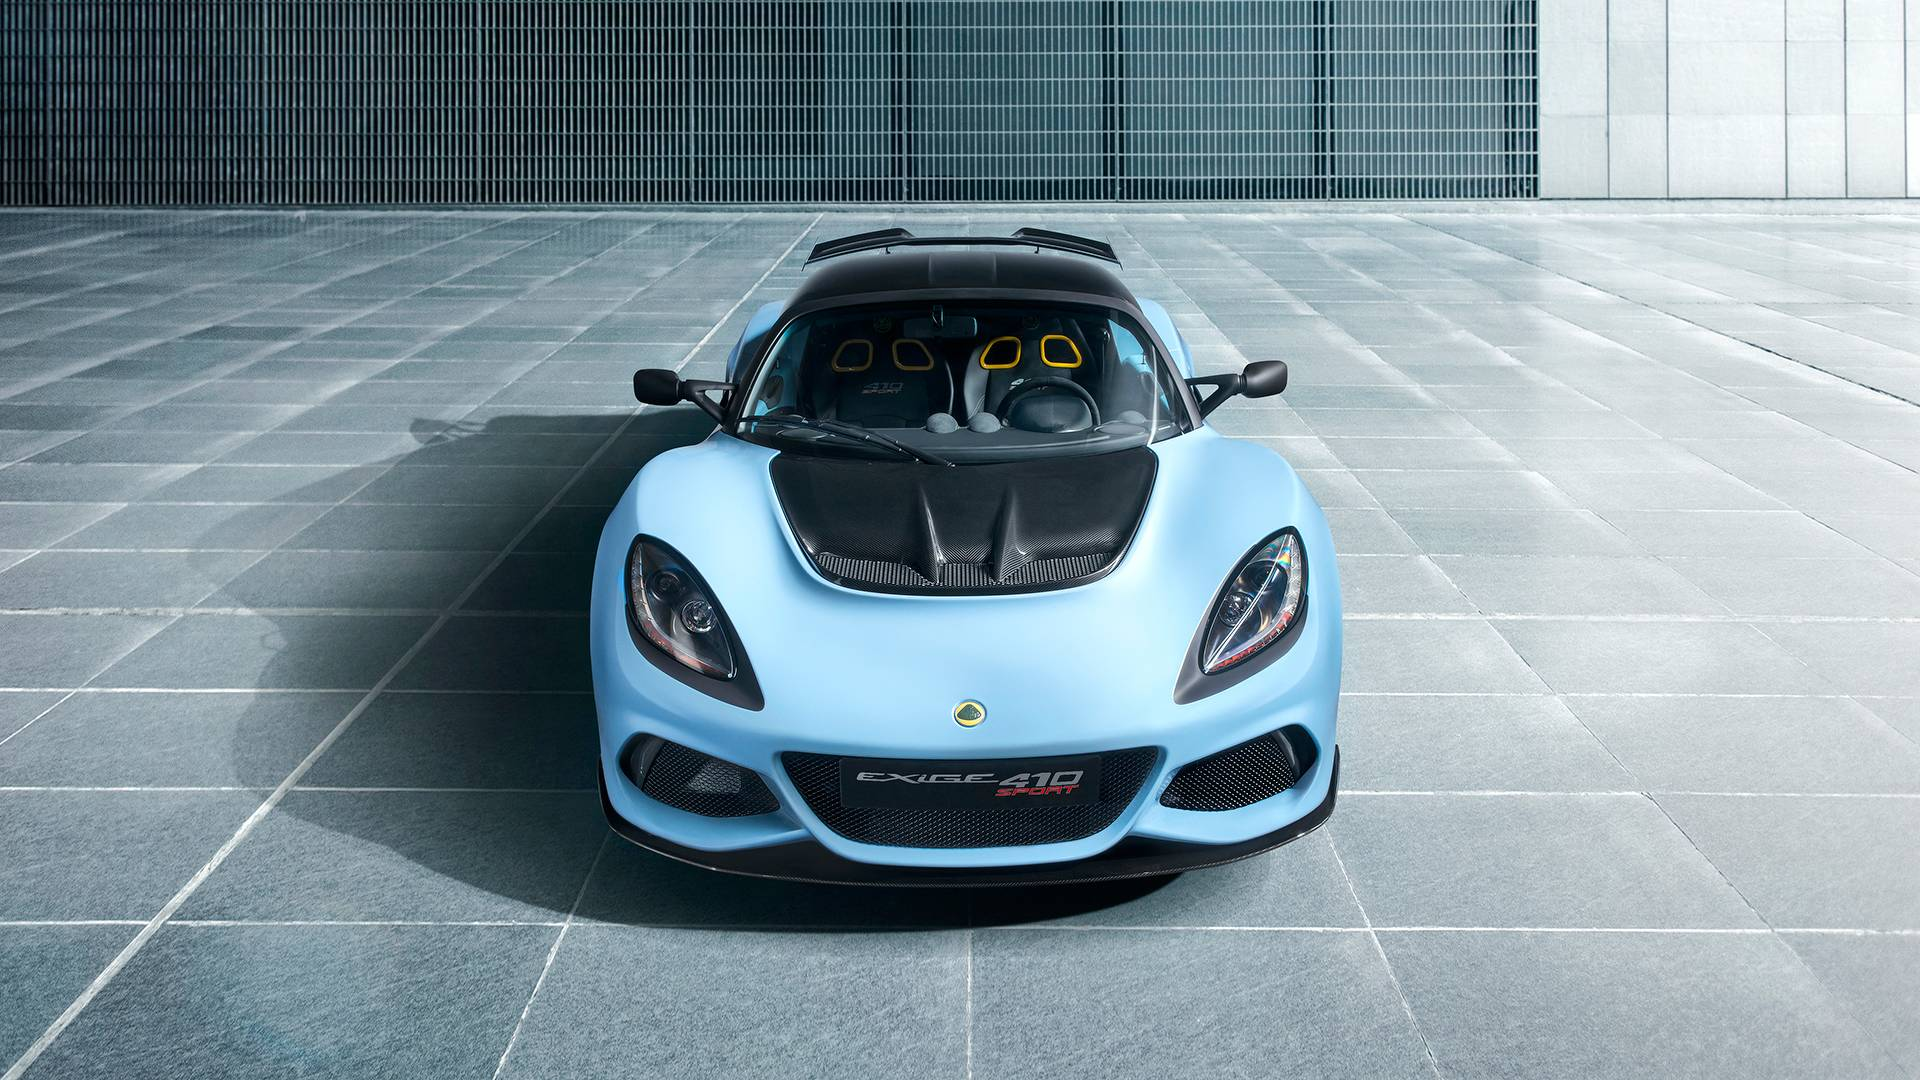 2020 Lotus Exige First Drive